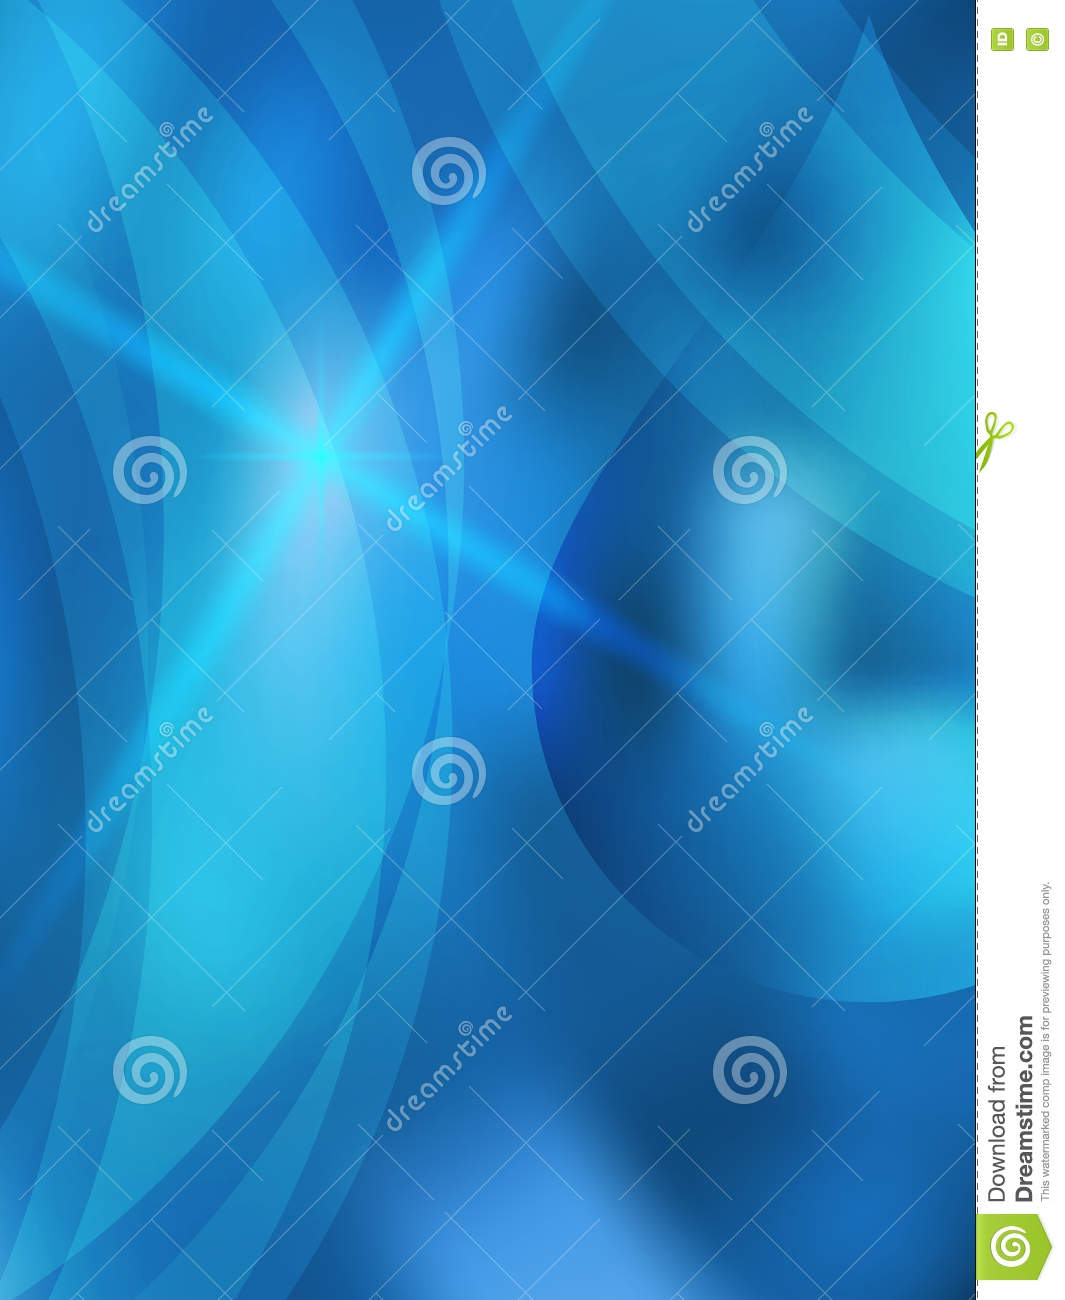 fresh water theme shine cover page a brochure stock vector fresh water theme shine cover page a4 brochure01